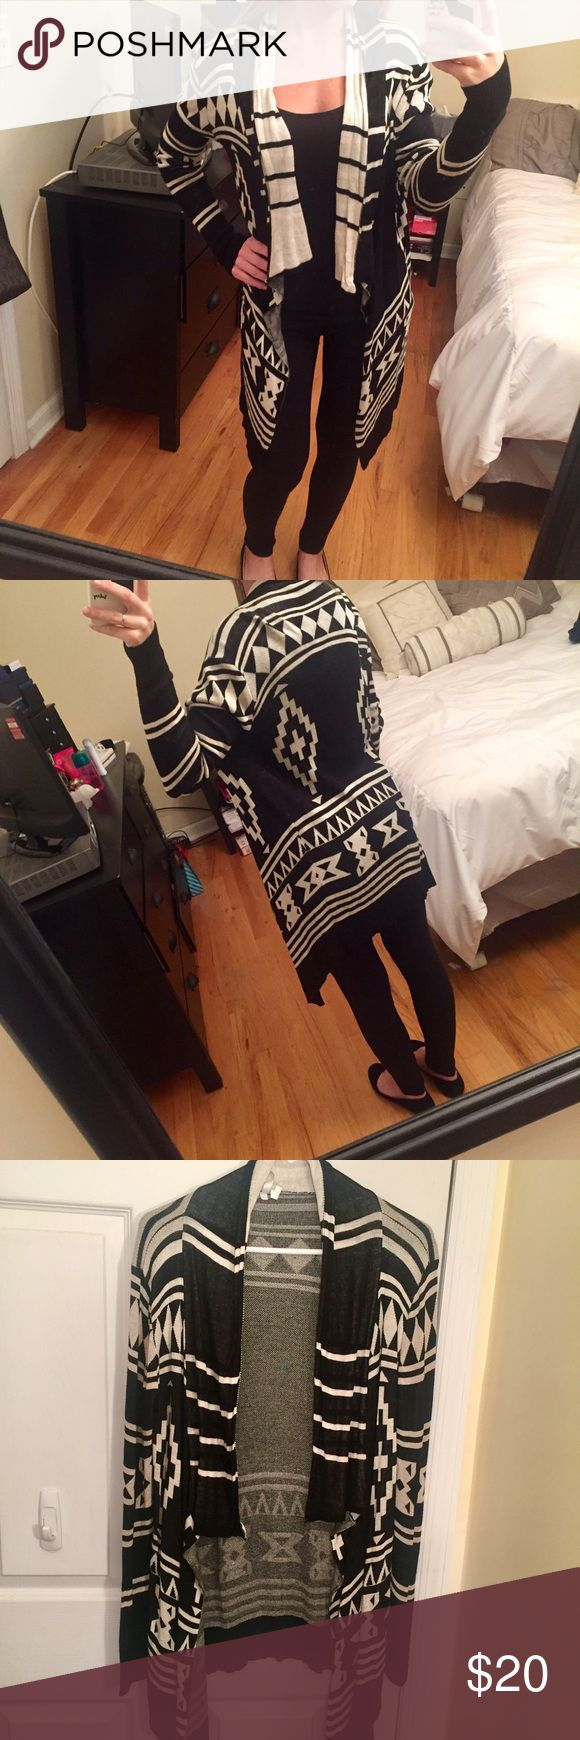 Black and cream Aztec print cardigan Black and cream colored Aztec printed cardigan that I bought from Garage. Super comfy and cute! Longer in the front than in the back. Has small hanger bumps on both shoulders from being hung dried on a hanger, but can be removed. Other wise no damage in good condition. Size small. 😊 NO TRADES🙅🏻 Garage Sweaters Cardigans